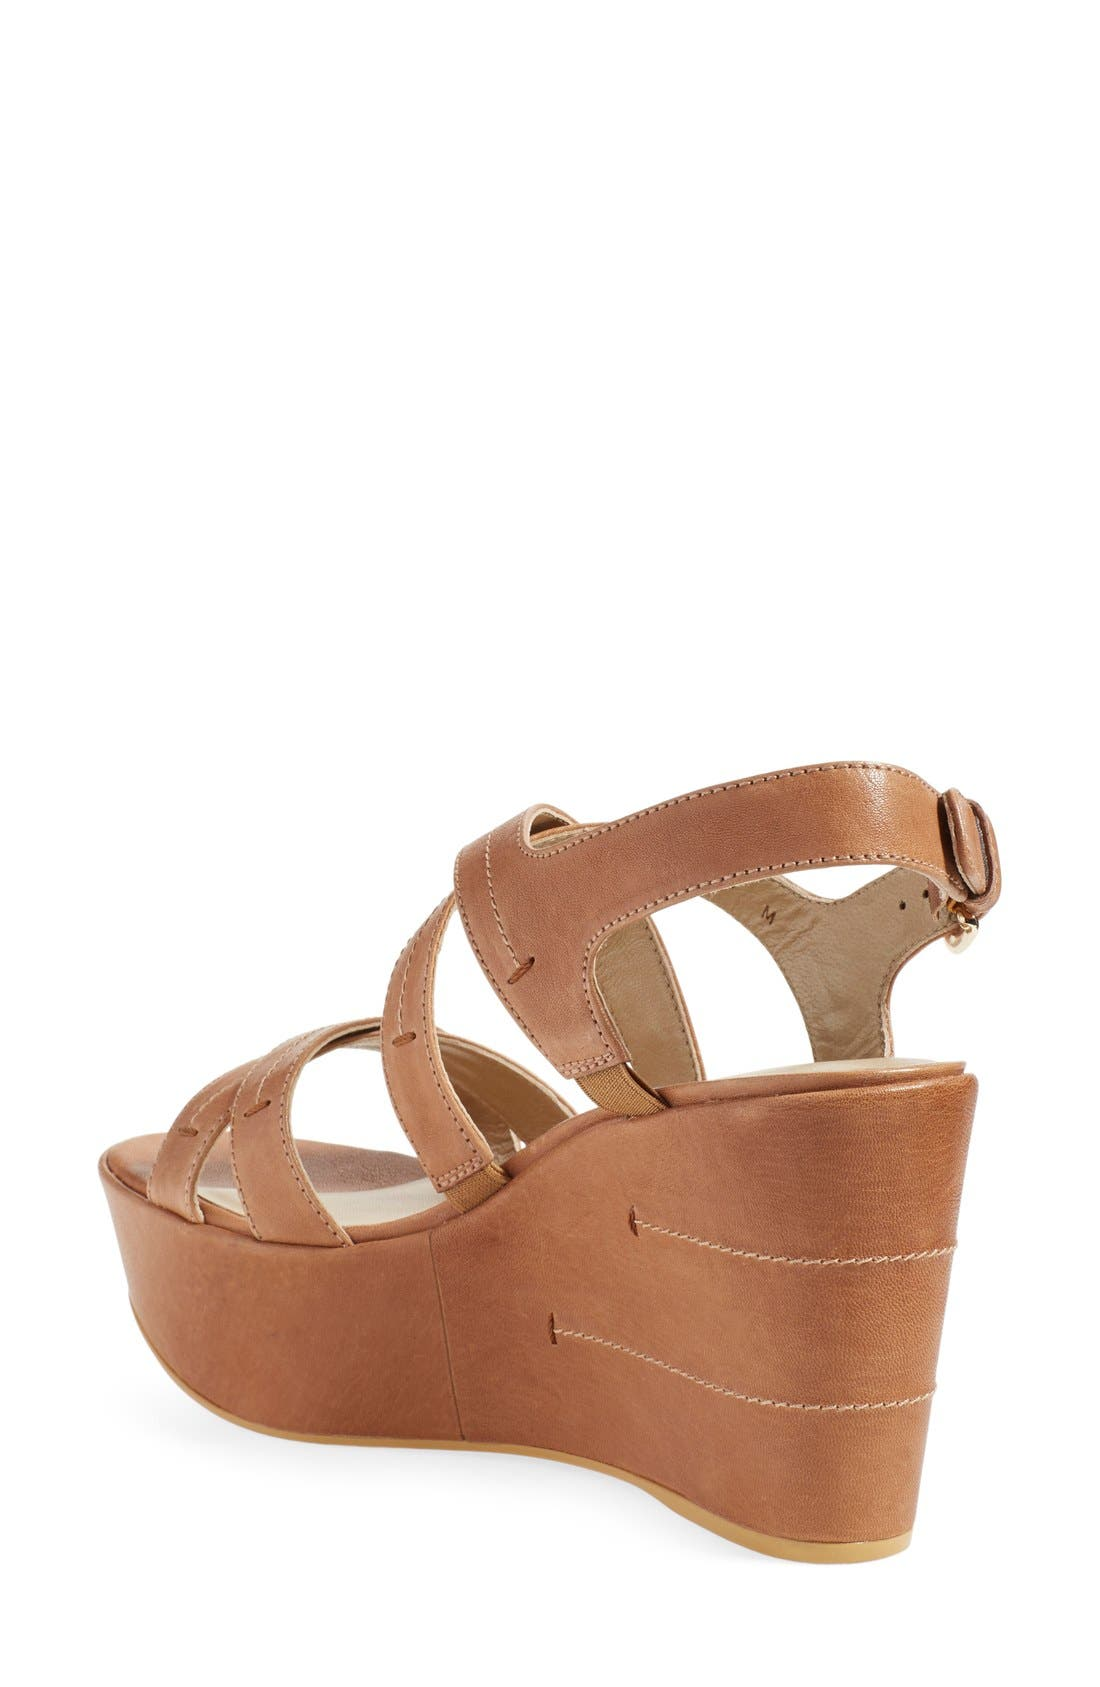 Alternate Image 2  - Stuart Weitzman 'Doublexing' Wedge Sandal (Women)